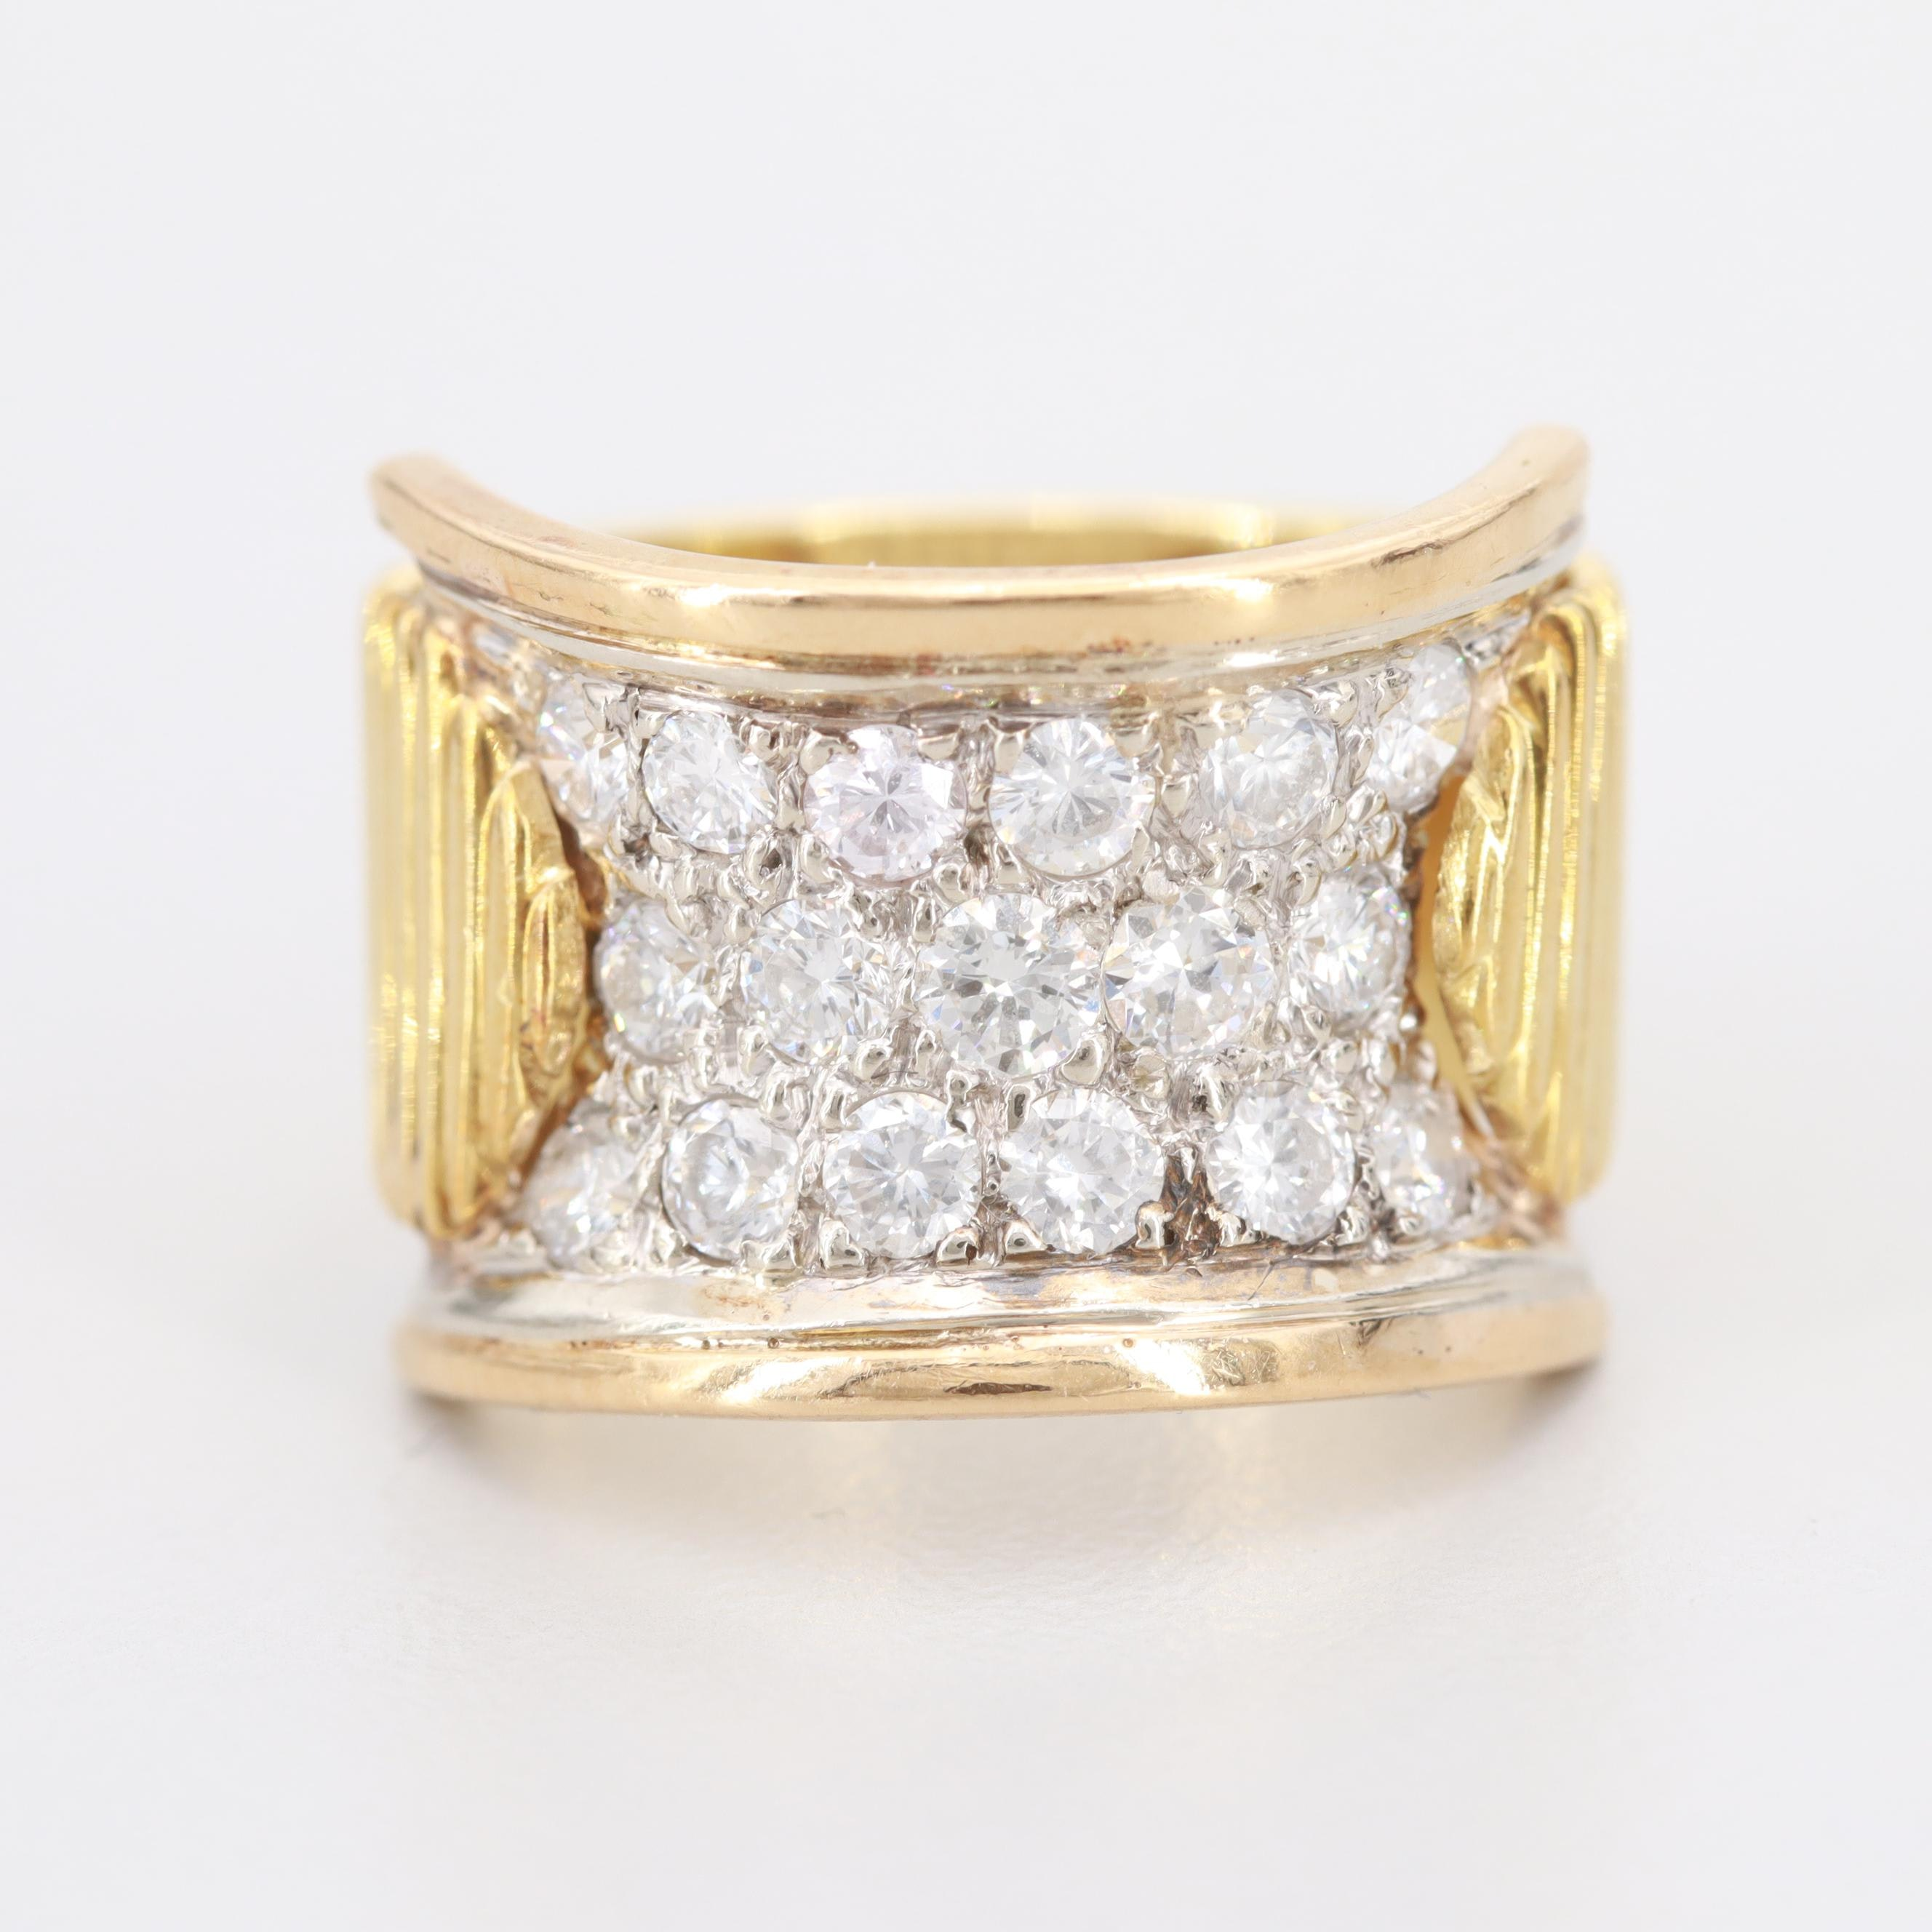 Circa 1970s 18K Yellow Gold 1.03 CTW Diamond Ring